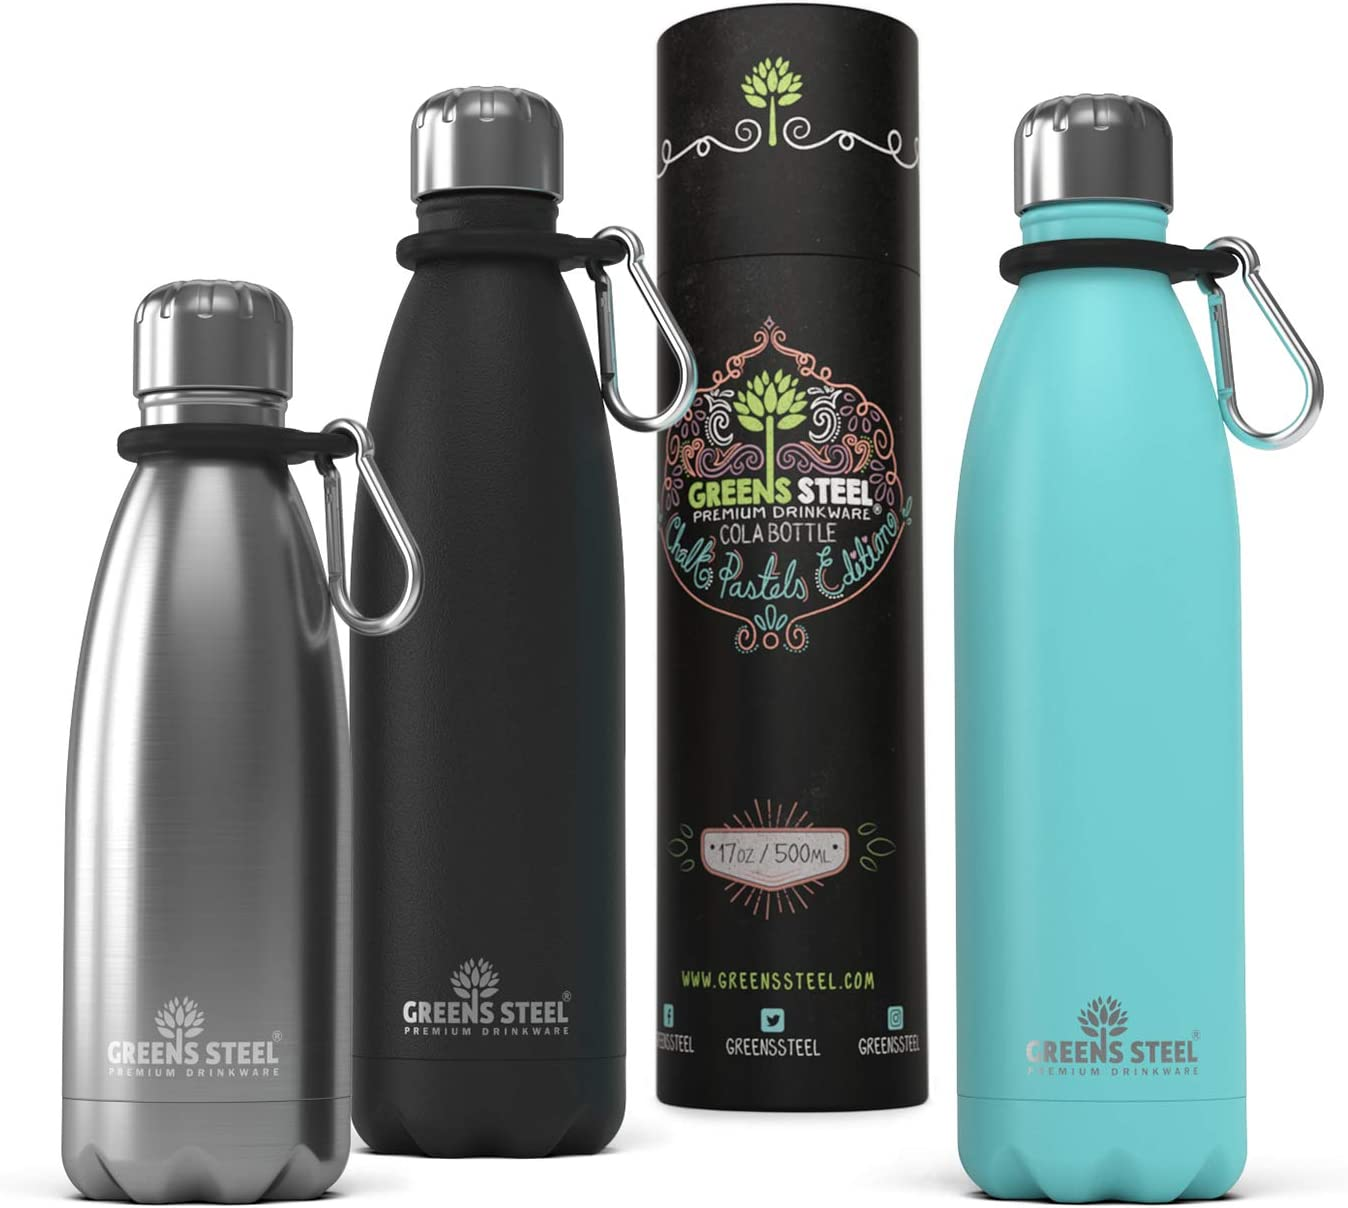 Stainless Steel Water Bottle - Vacuum Insulated Double Wall Leak Proof with Screw Lid & Carabiner - Thermos Sports Flask 24 Hours Cold/ 12 Hours Hot - Bonus Value Bundle